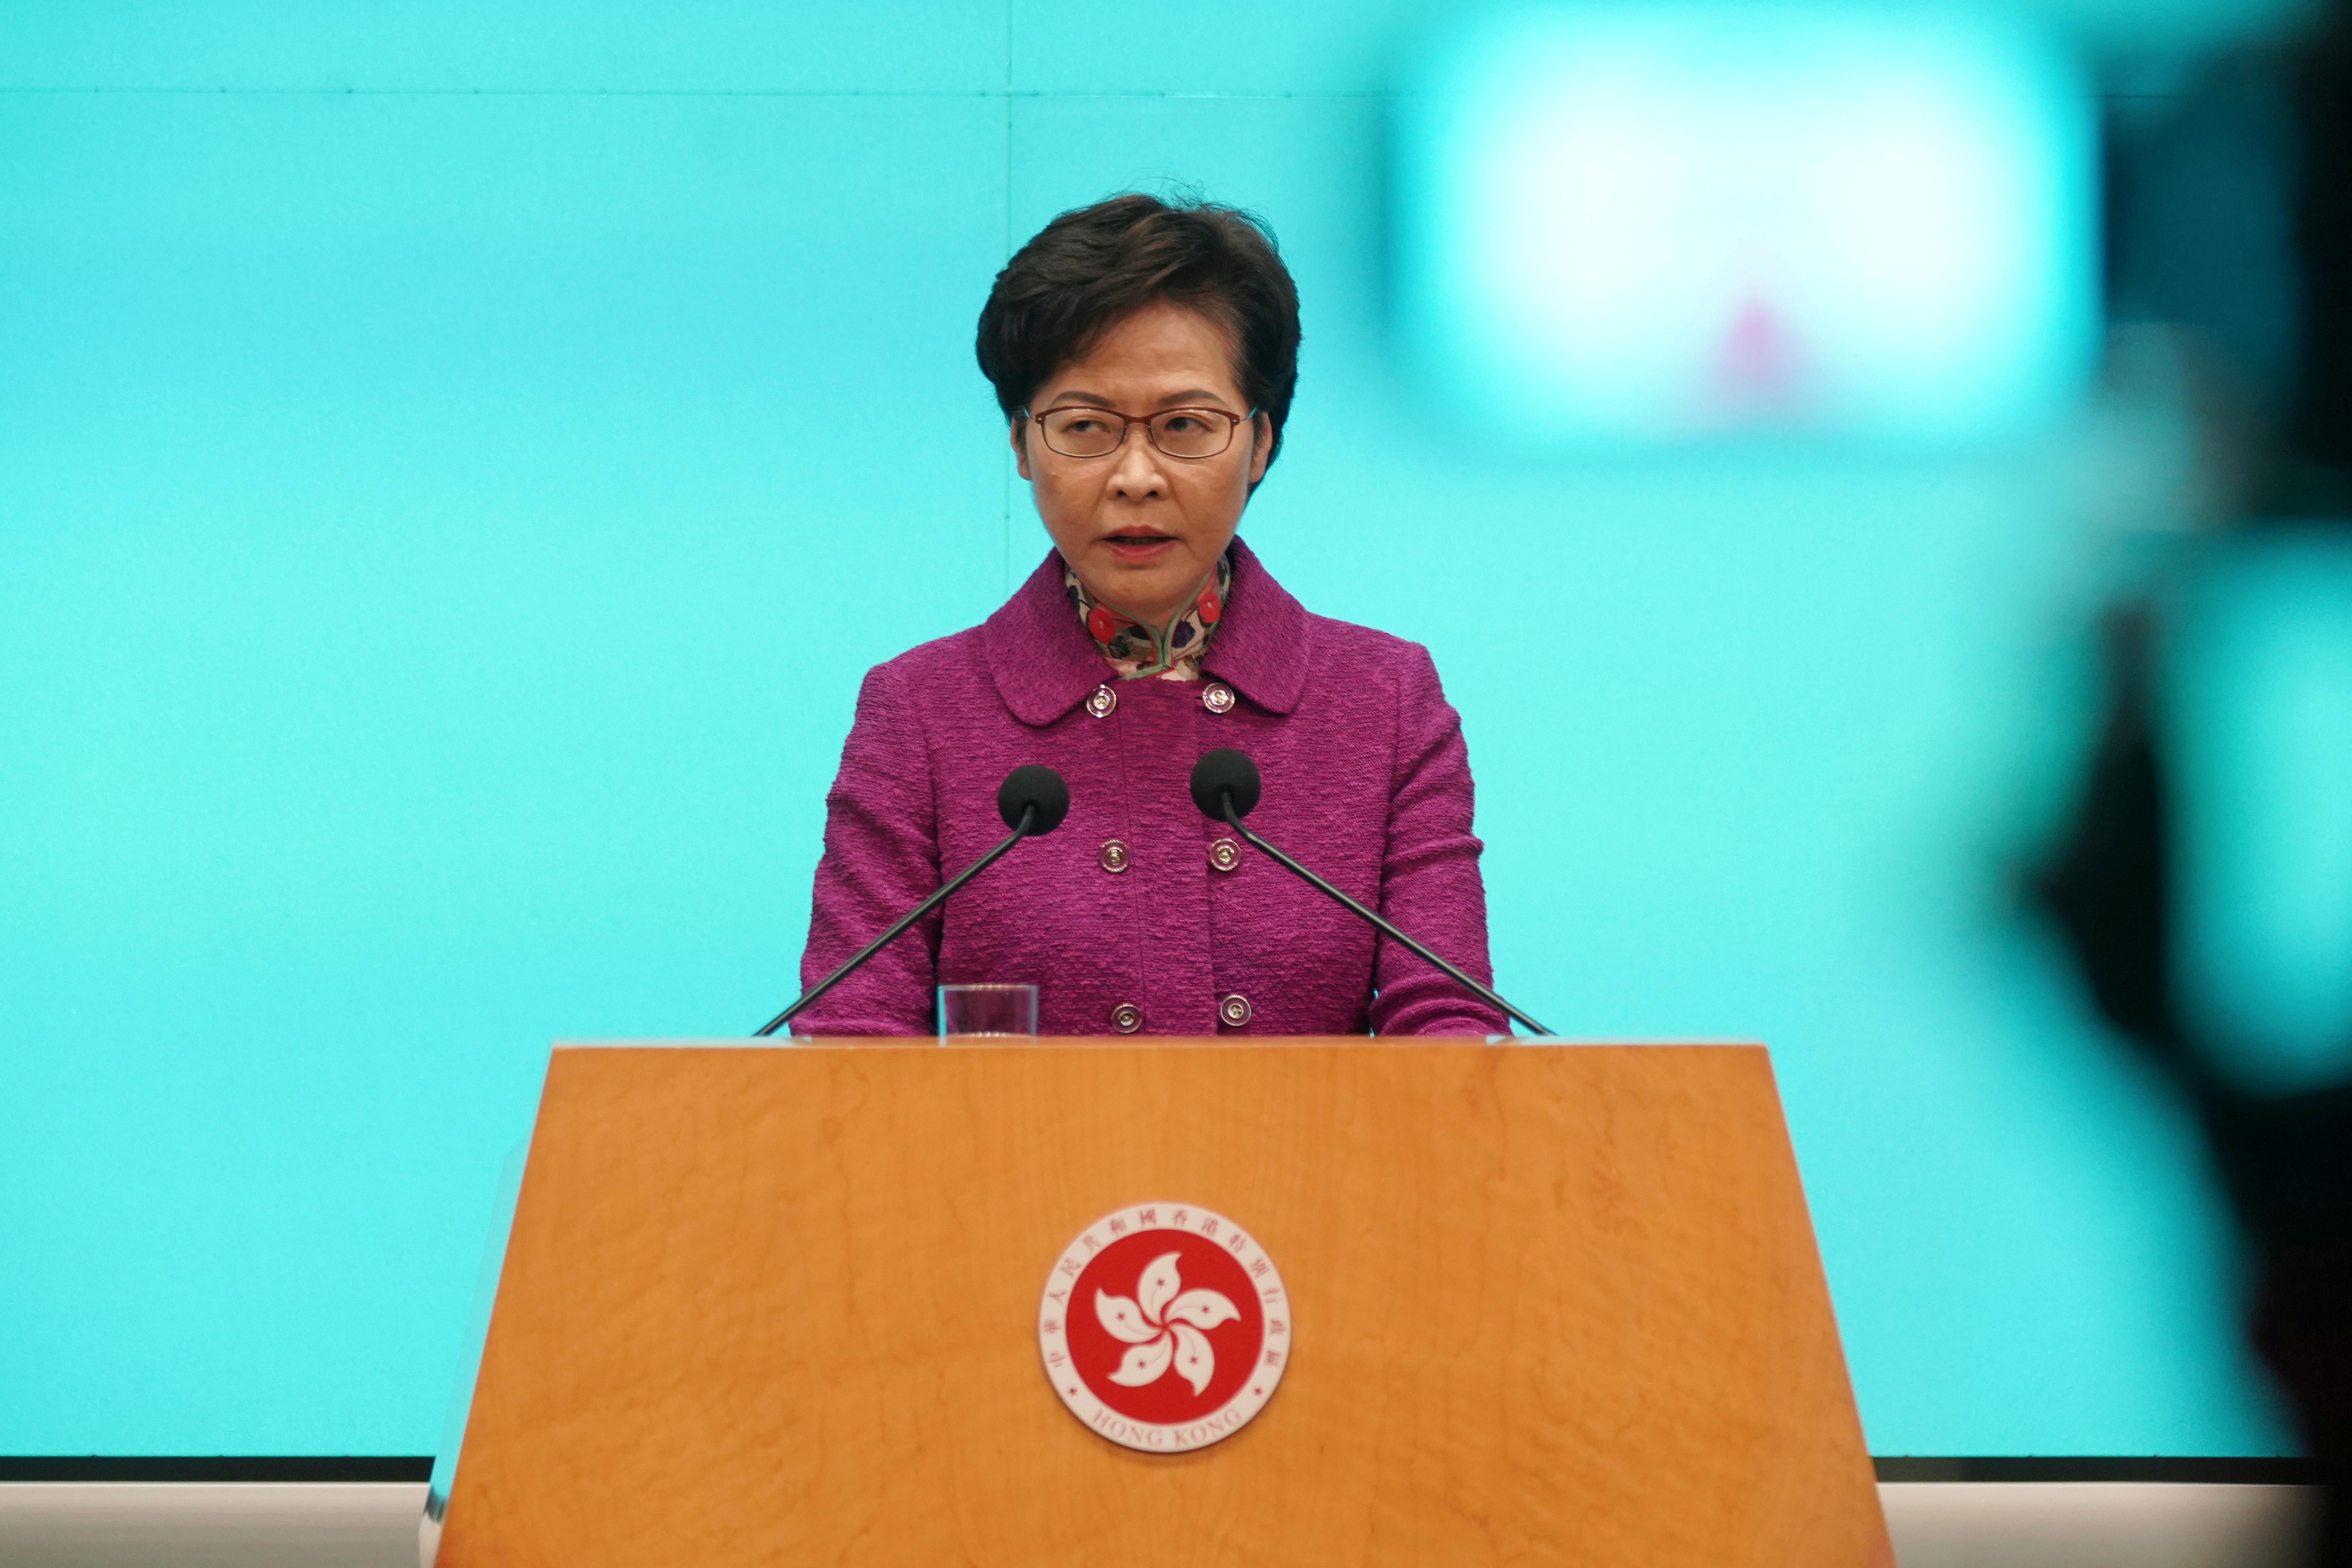 Hong Kong Chief Executive Carrie Lam attends a news conference following the annual policy address in Hong Kong, China November 25, 2020. REUTERS/Lam Yik/File Photo